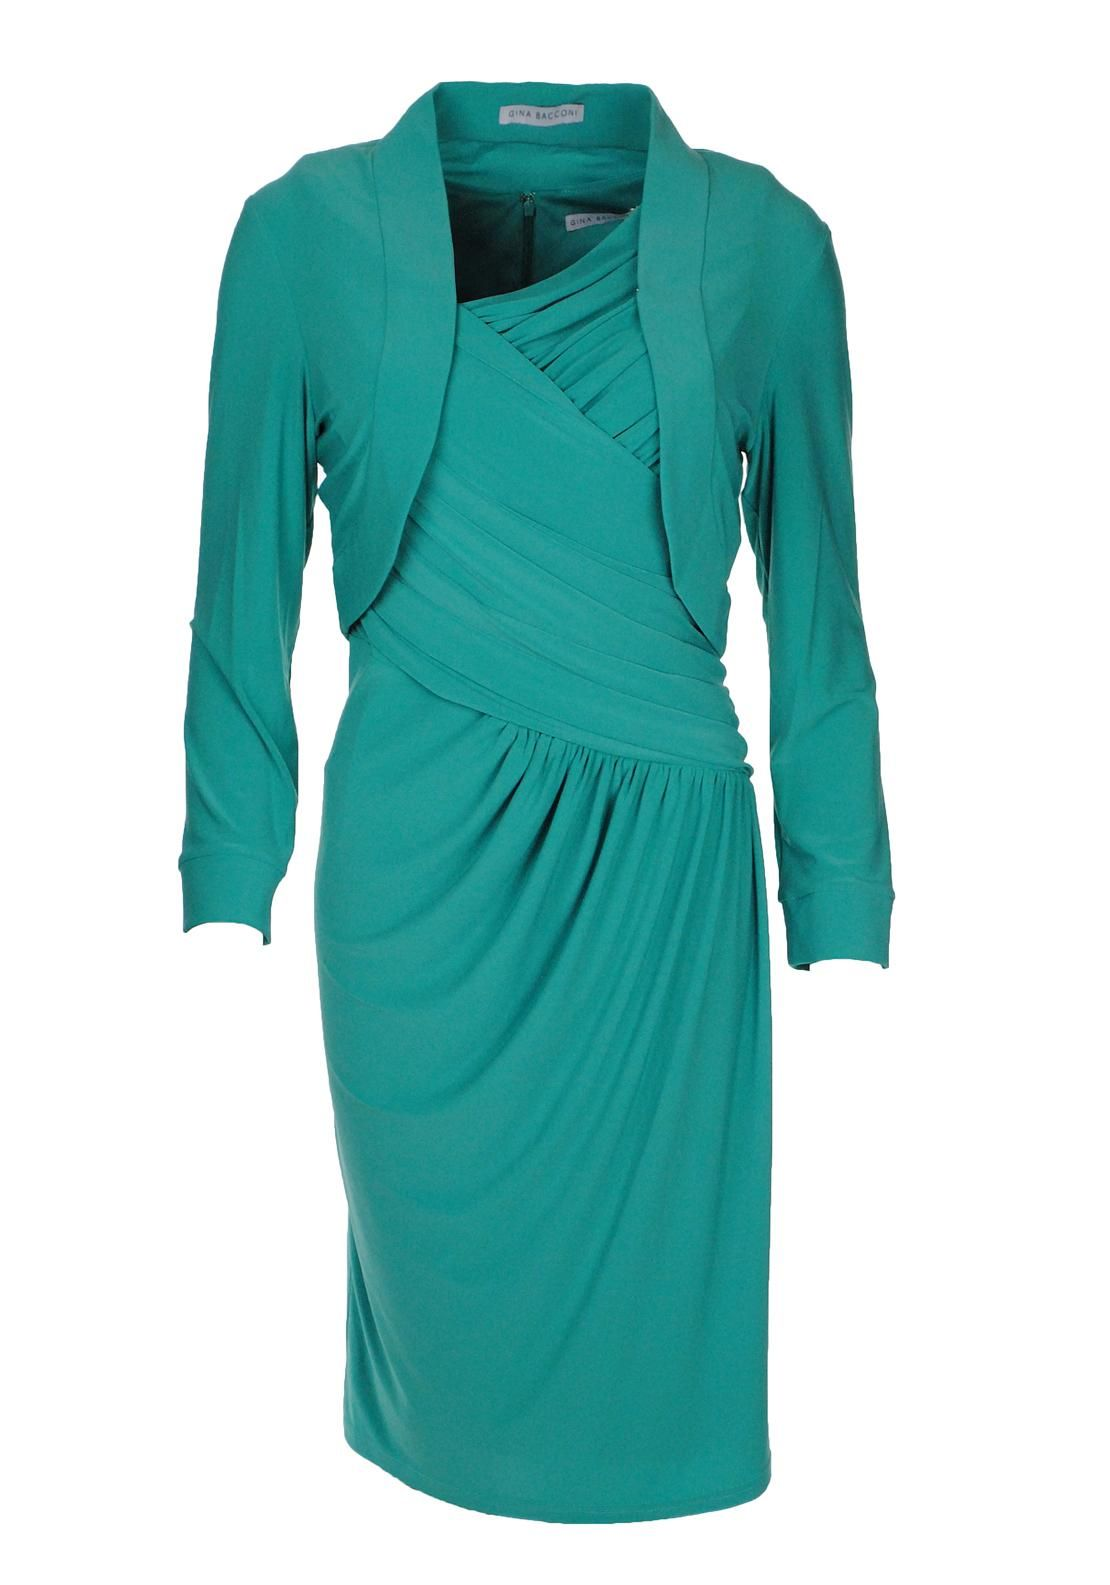 Gina Bacconi Two Piece Suit, Green | McElhinneys Online Department ...